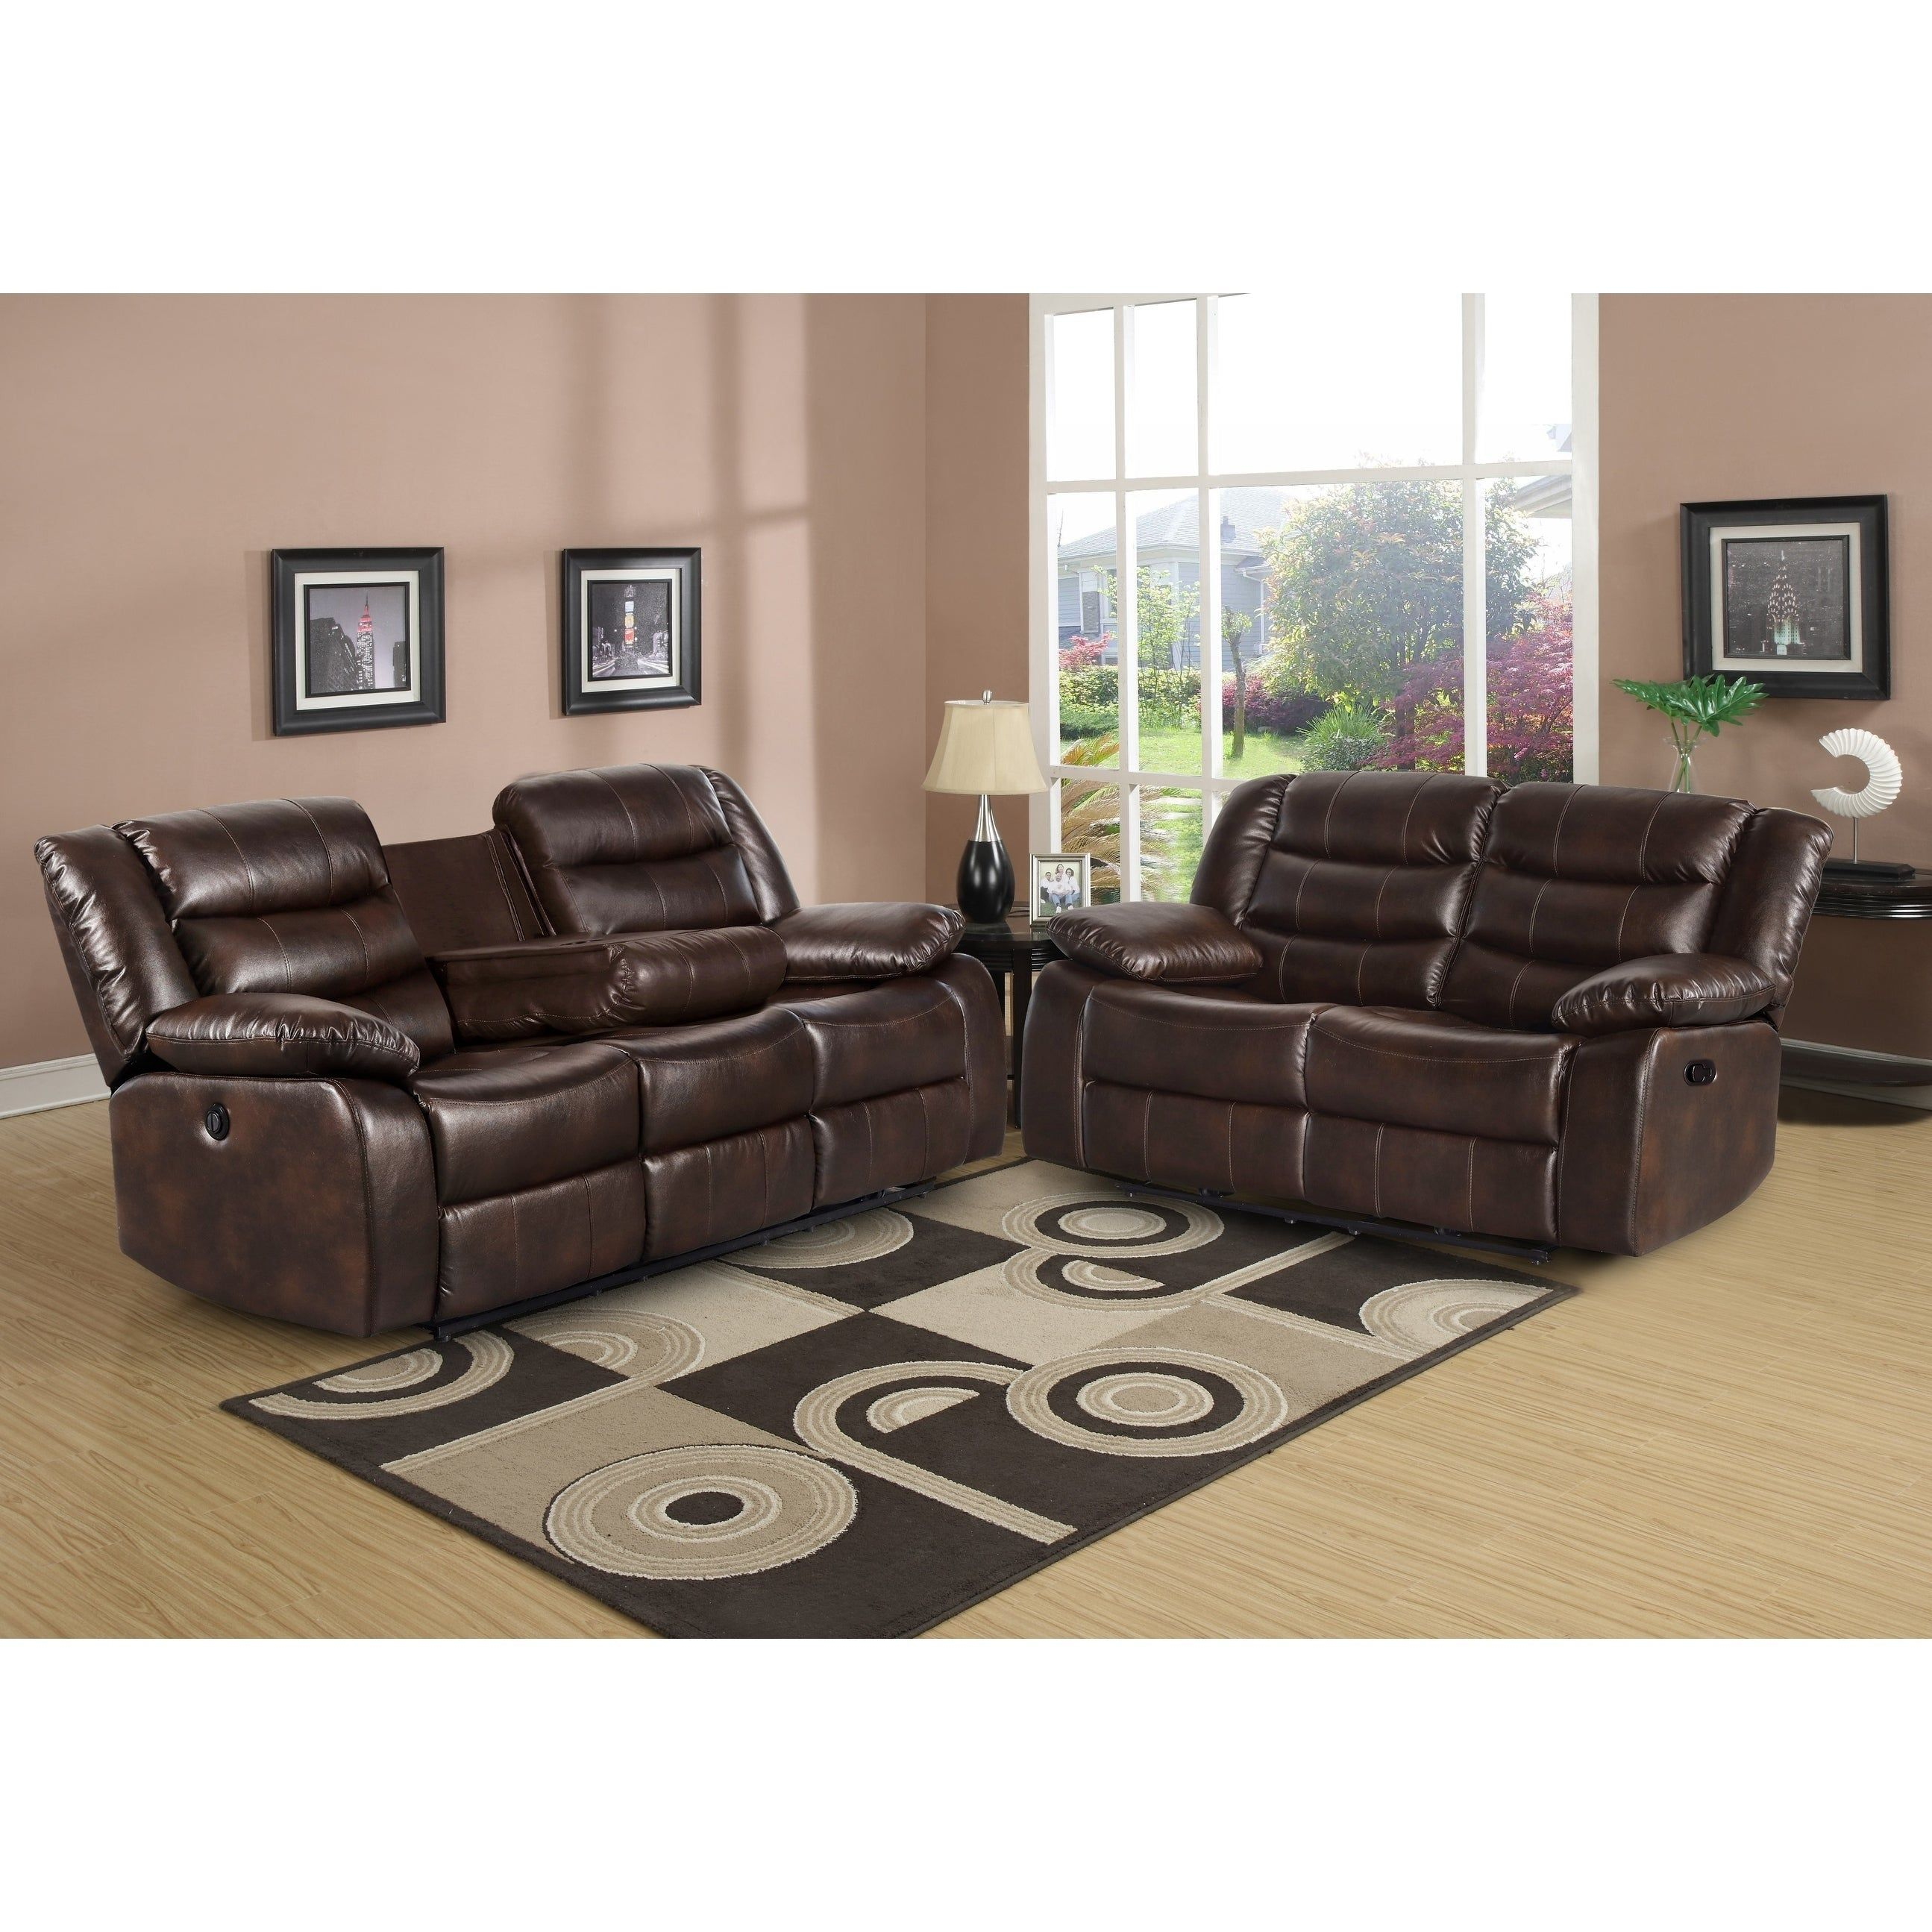 Prime Trista Reclining 2 Piece Sofa Loveseat Living Room Set Gmtry Best Dining Table And Chair Ideas Images Gmtryco